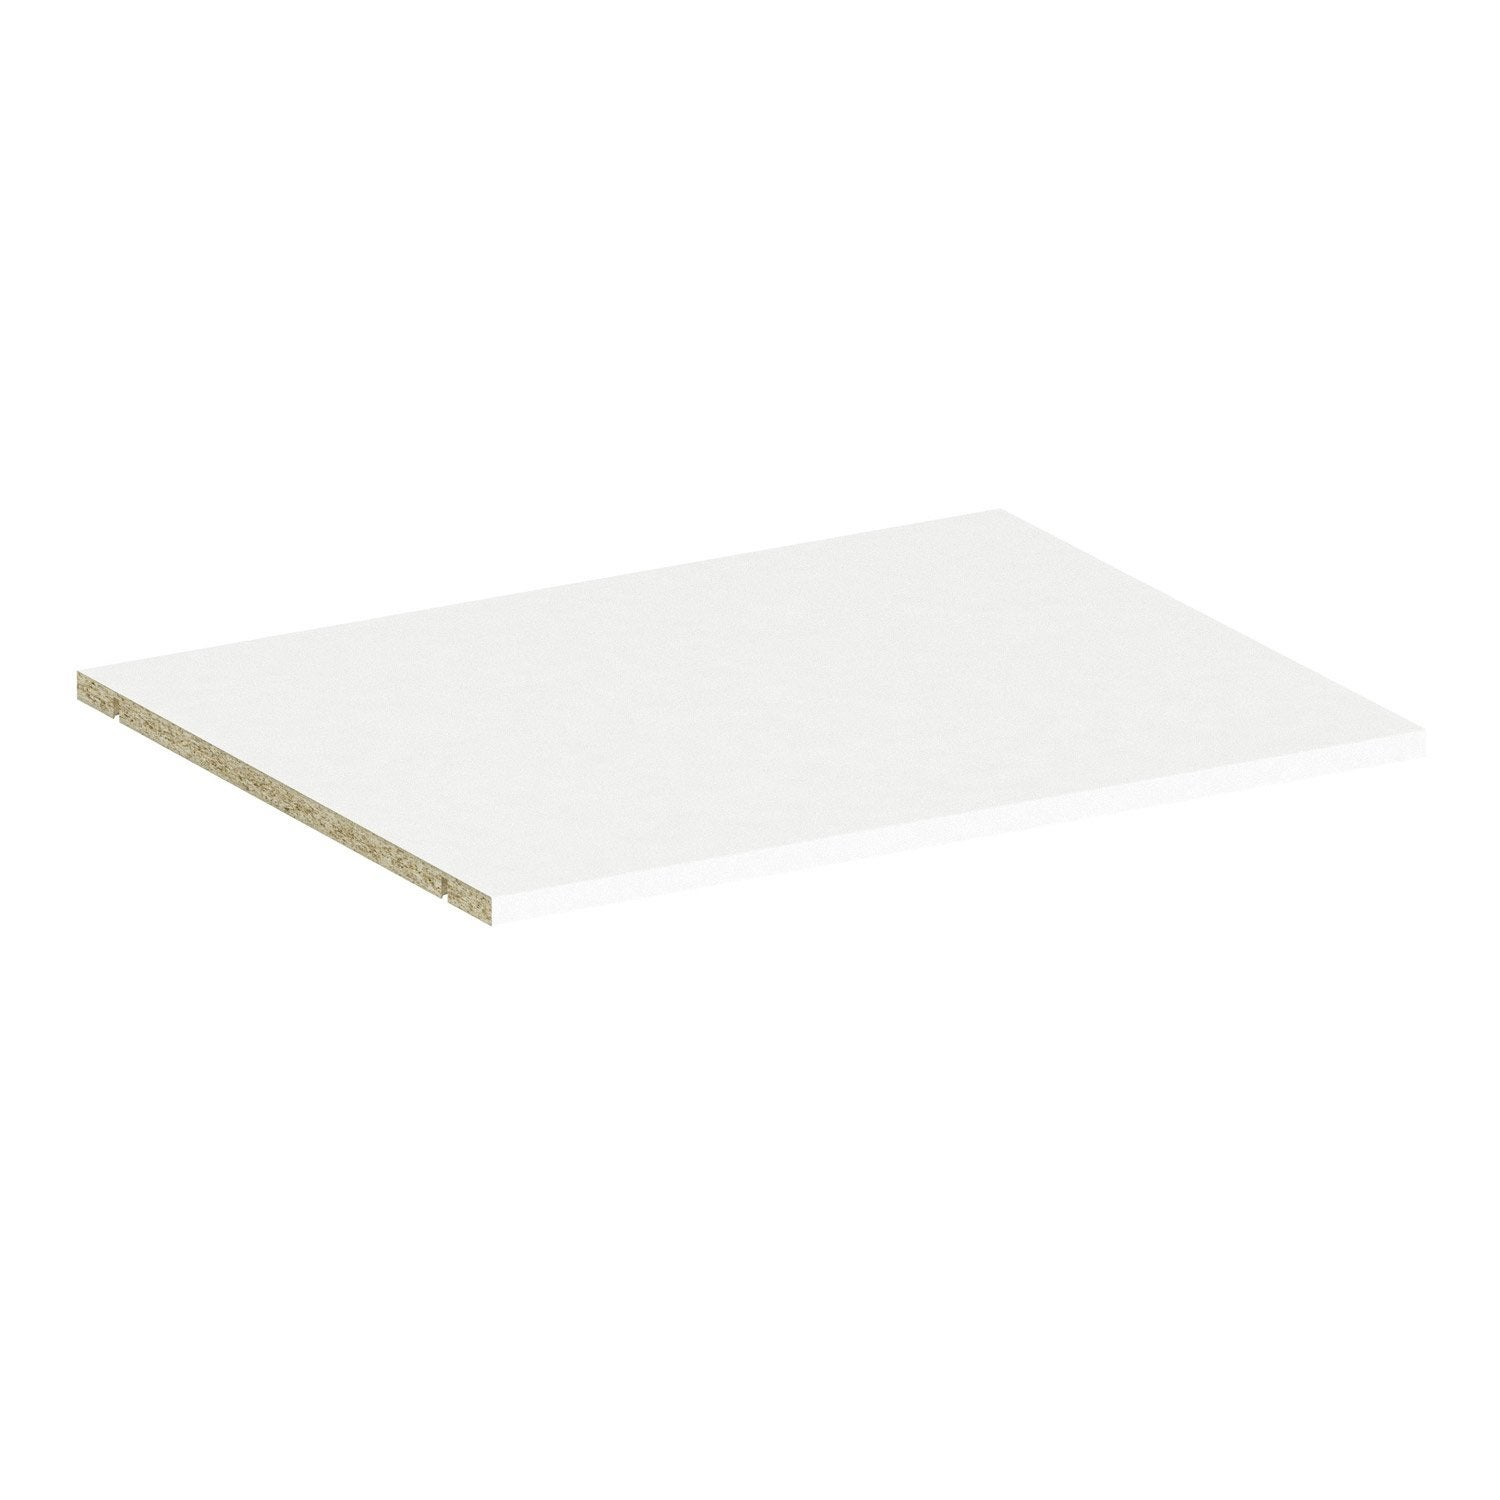 Connu Tablette SPACEO Home 1.6 x 60 x 45 cm, blanc | Leroy Merlin RM45